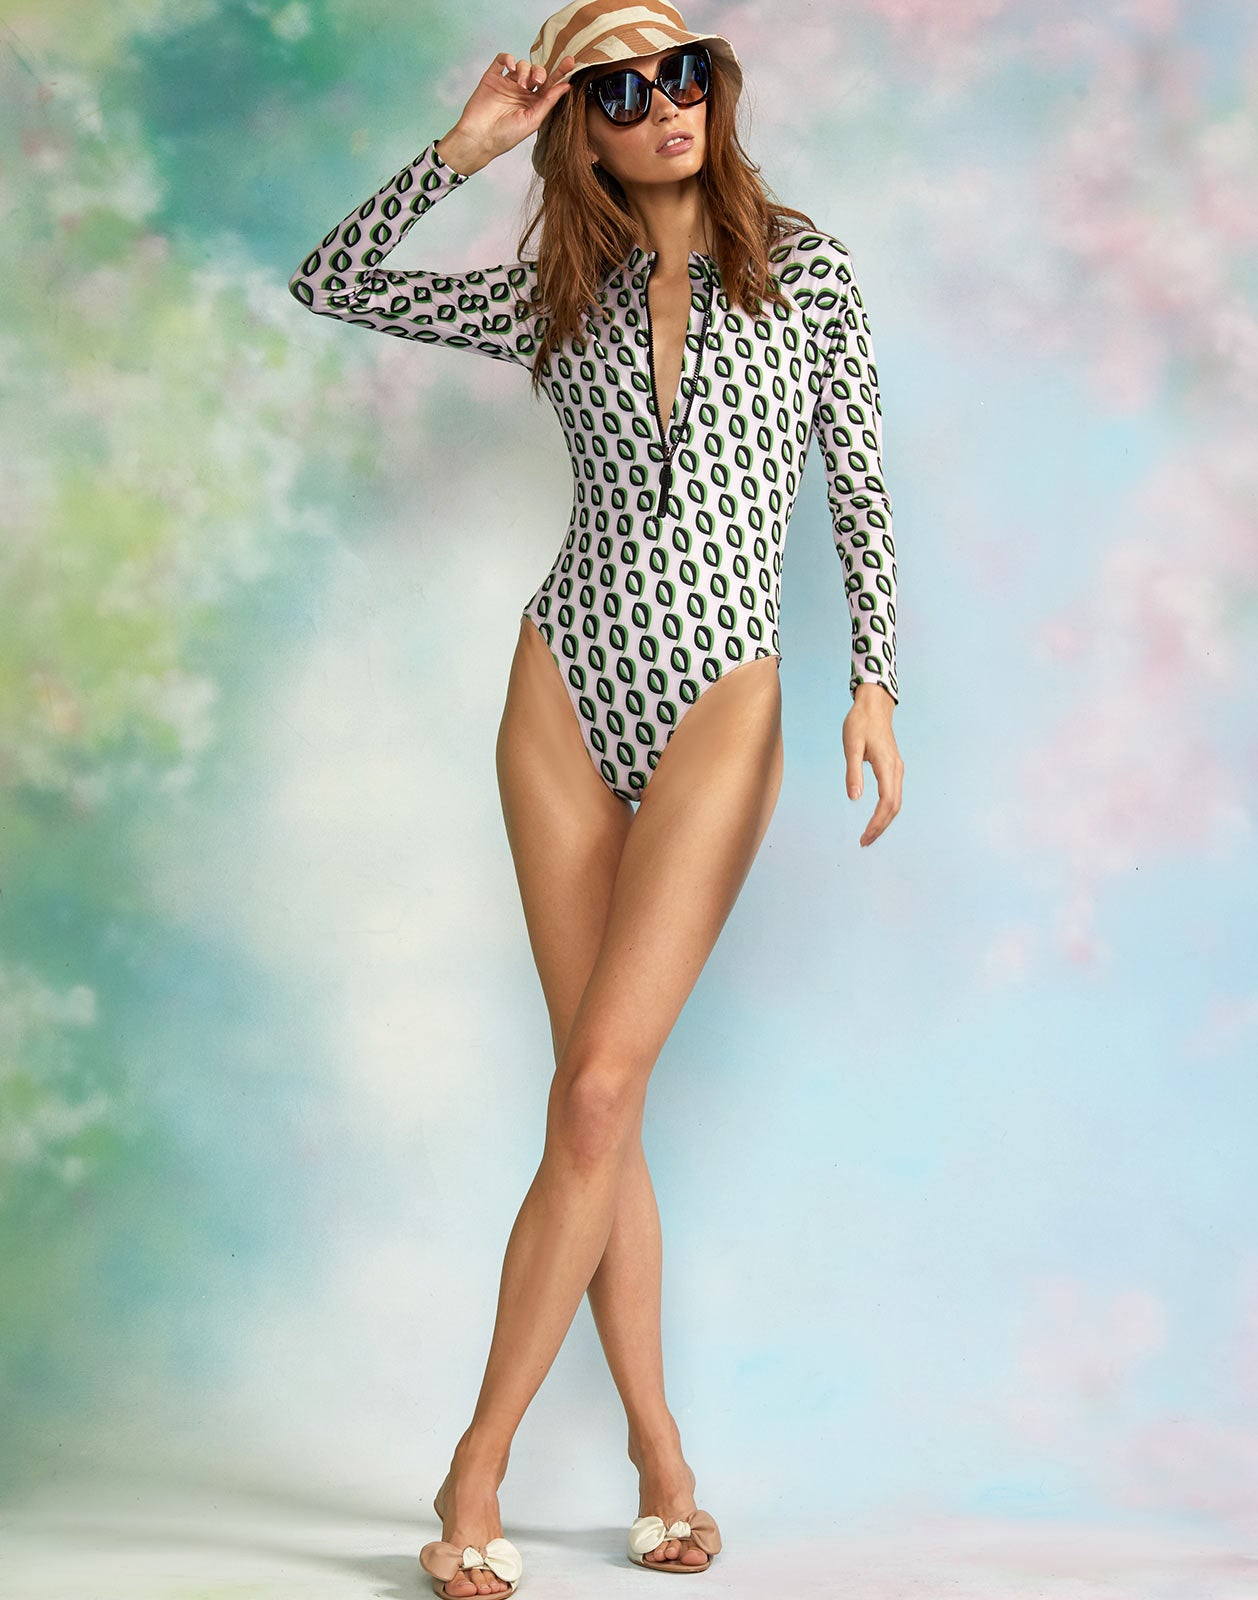 Full view of model wearing the Riva Surfsuit.